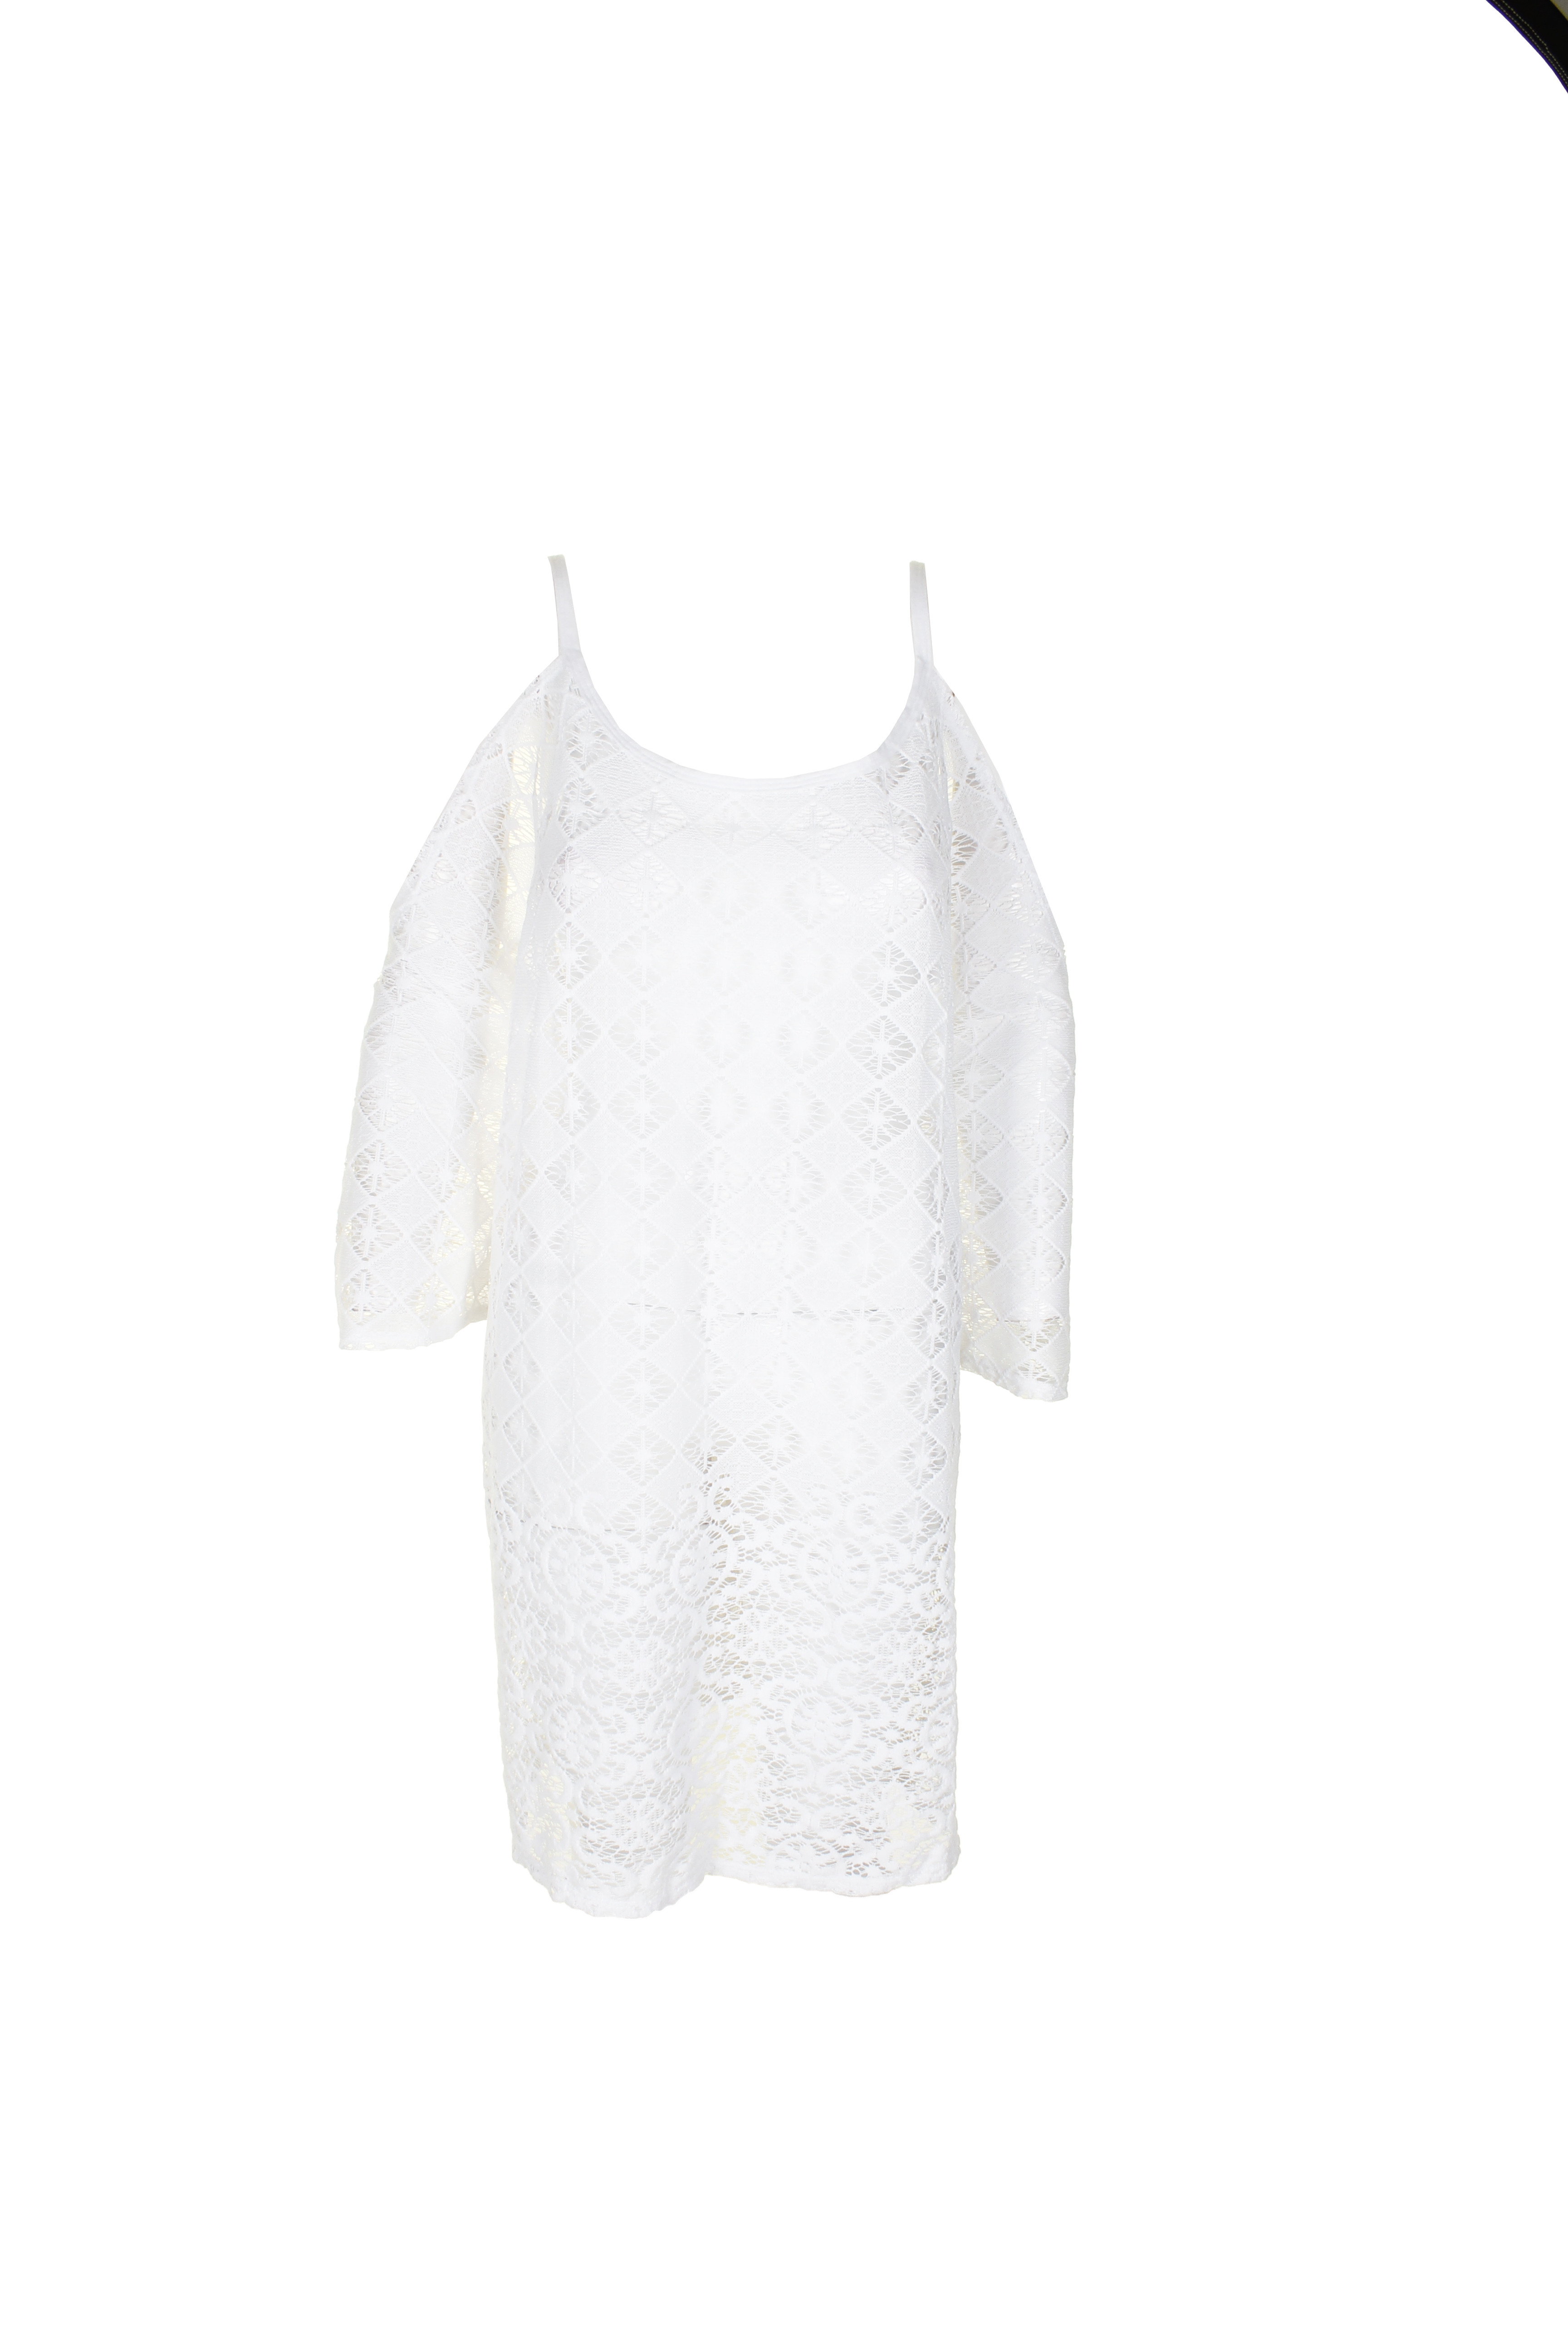 d1a42e79f52 Dotti Plus Size White Boho Lace Crochet Sheer Cold-Shoulder Tunic Cover-Up  3X